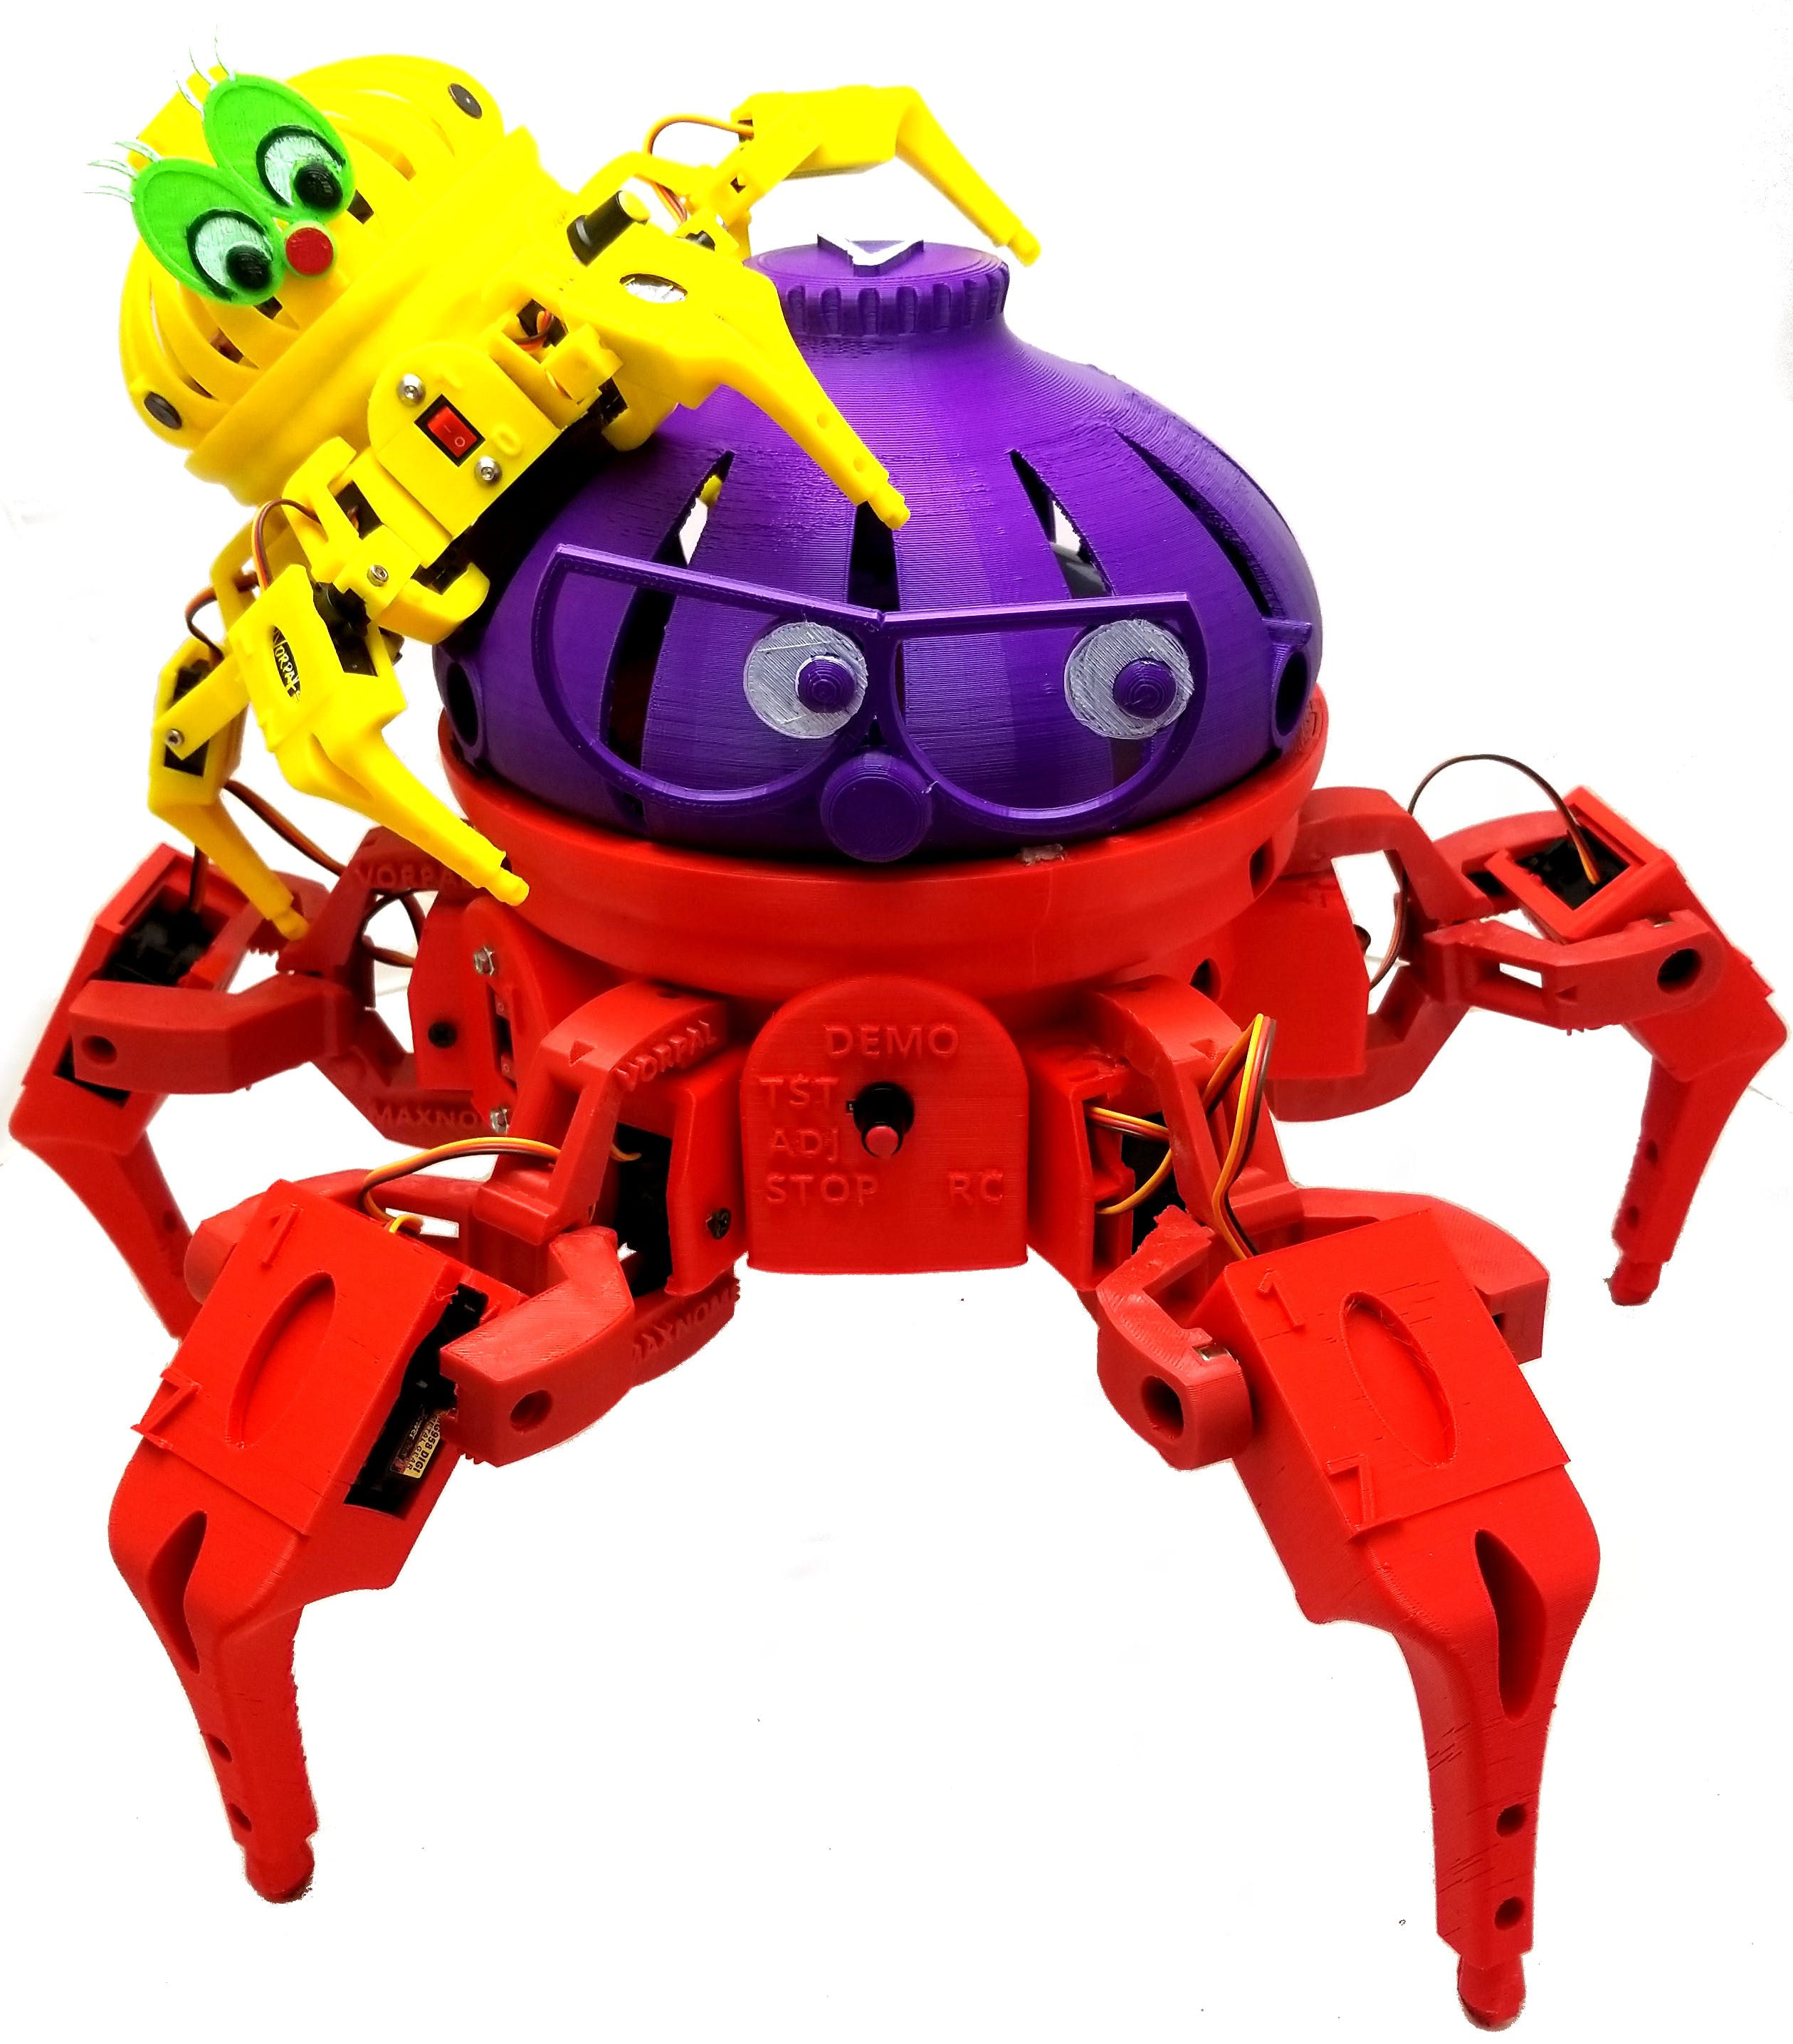 Max the Megapod (red and blue) is eight times the volume of our original hexapod (yellow)